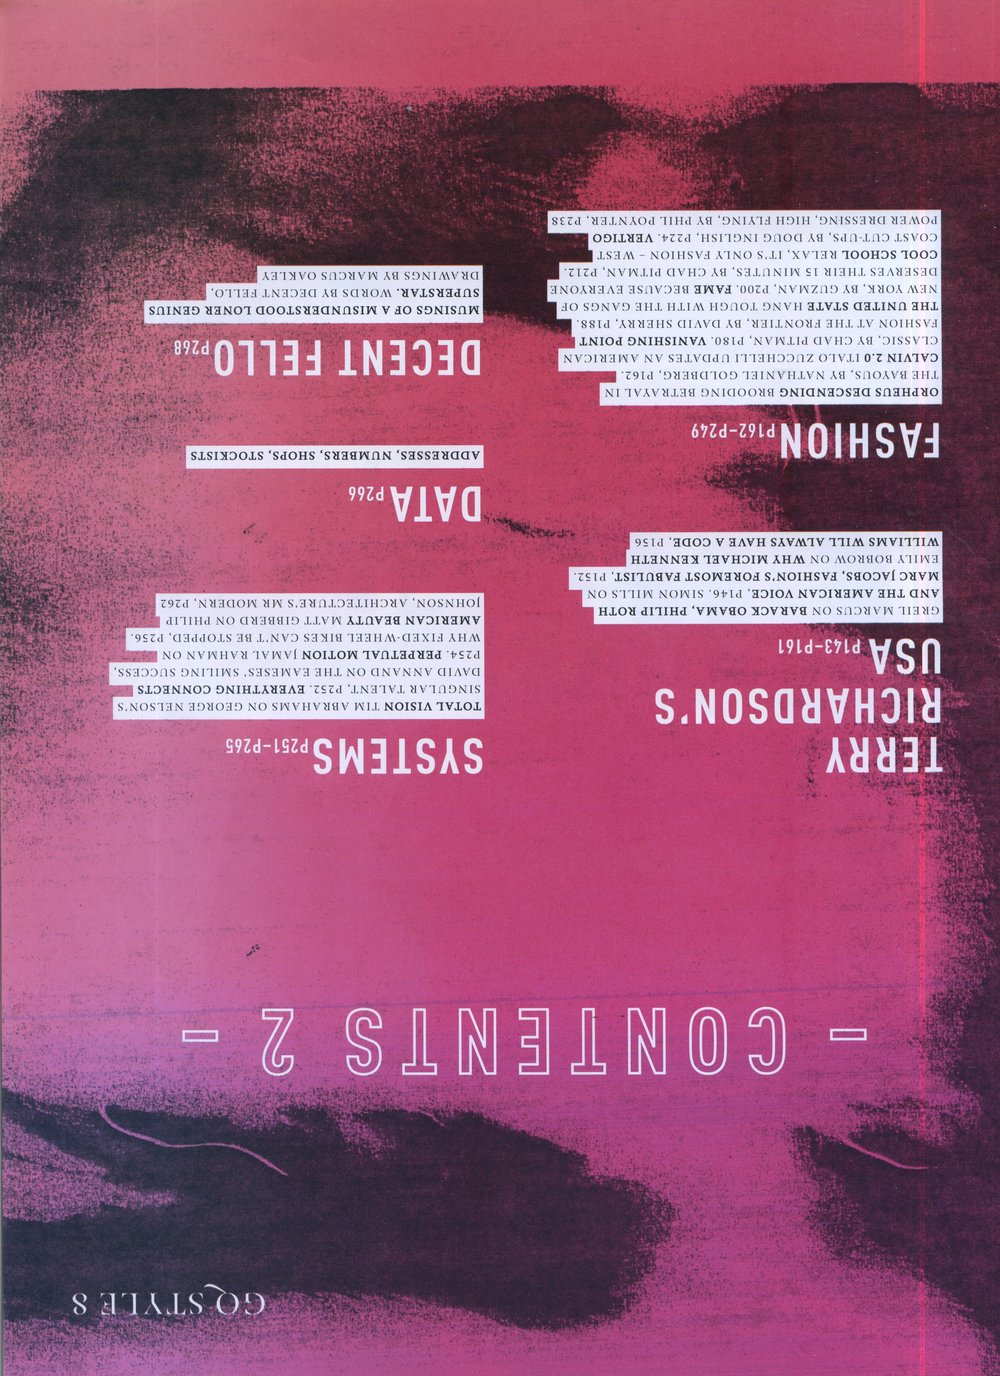 Issue 8 SS09 - Contents 2.jpeg